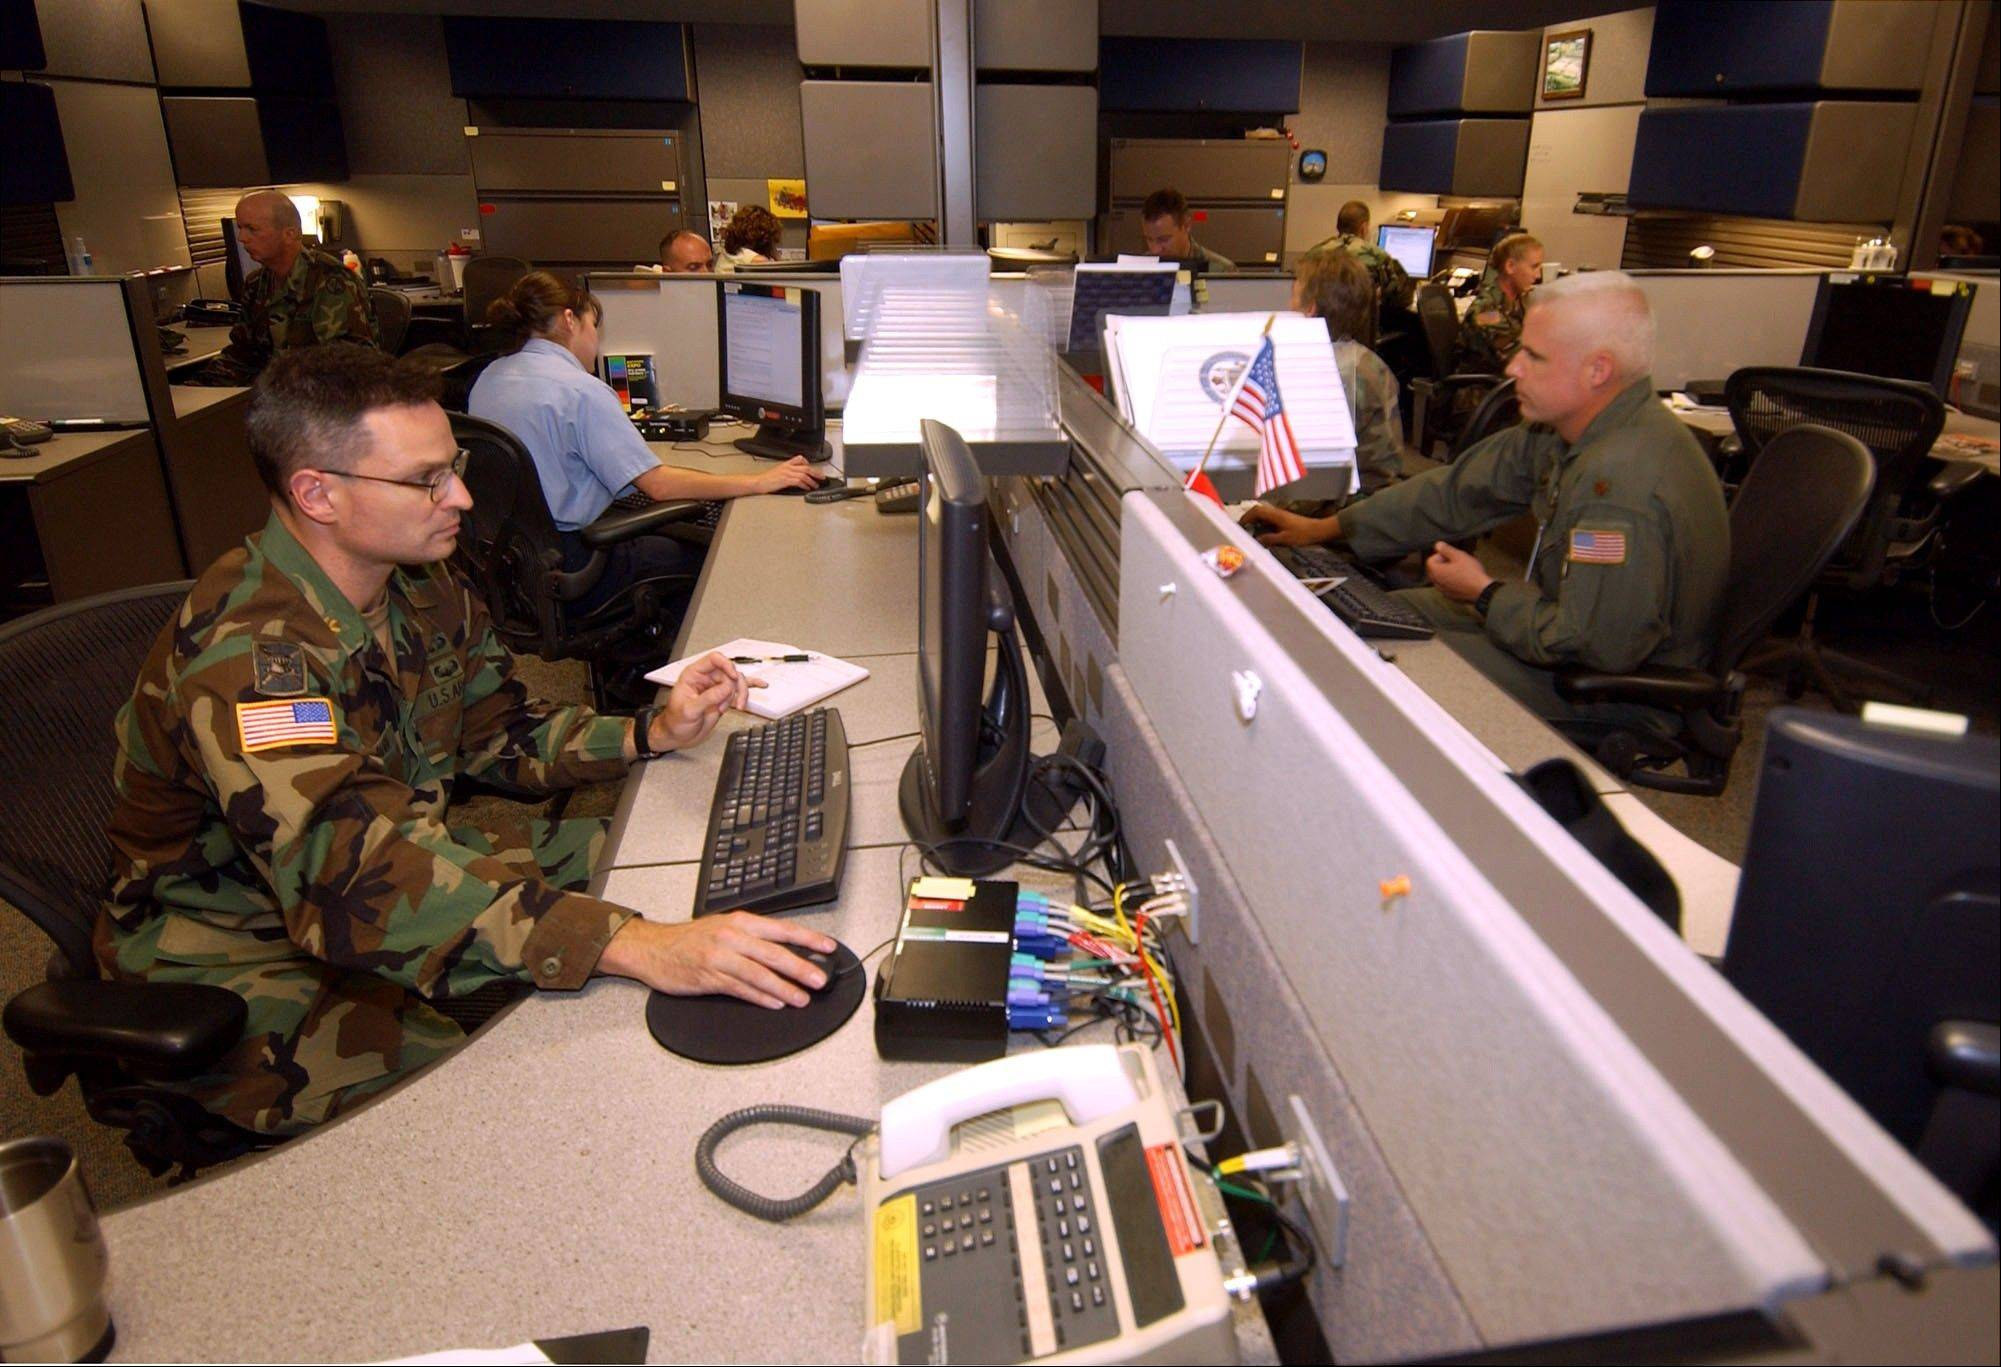 This Aug. 25, 2004 file photo shows unidentified analysts at the Combined Intelligence and Fusion Center for NORAD/Northcom in Colorado Springs, Colo. A multibillion-dollar information-sharing program that was created in the aftermath of Sept. 11 has improperly collected information about innocent Americans and produced no valuable intelligence on terrorism, according to a Senate report that describes an effort that ballooned far beyond anyoneís ability to control.